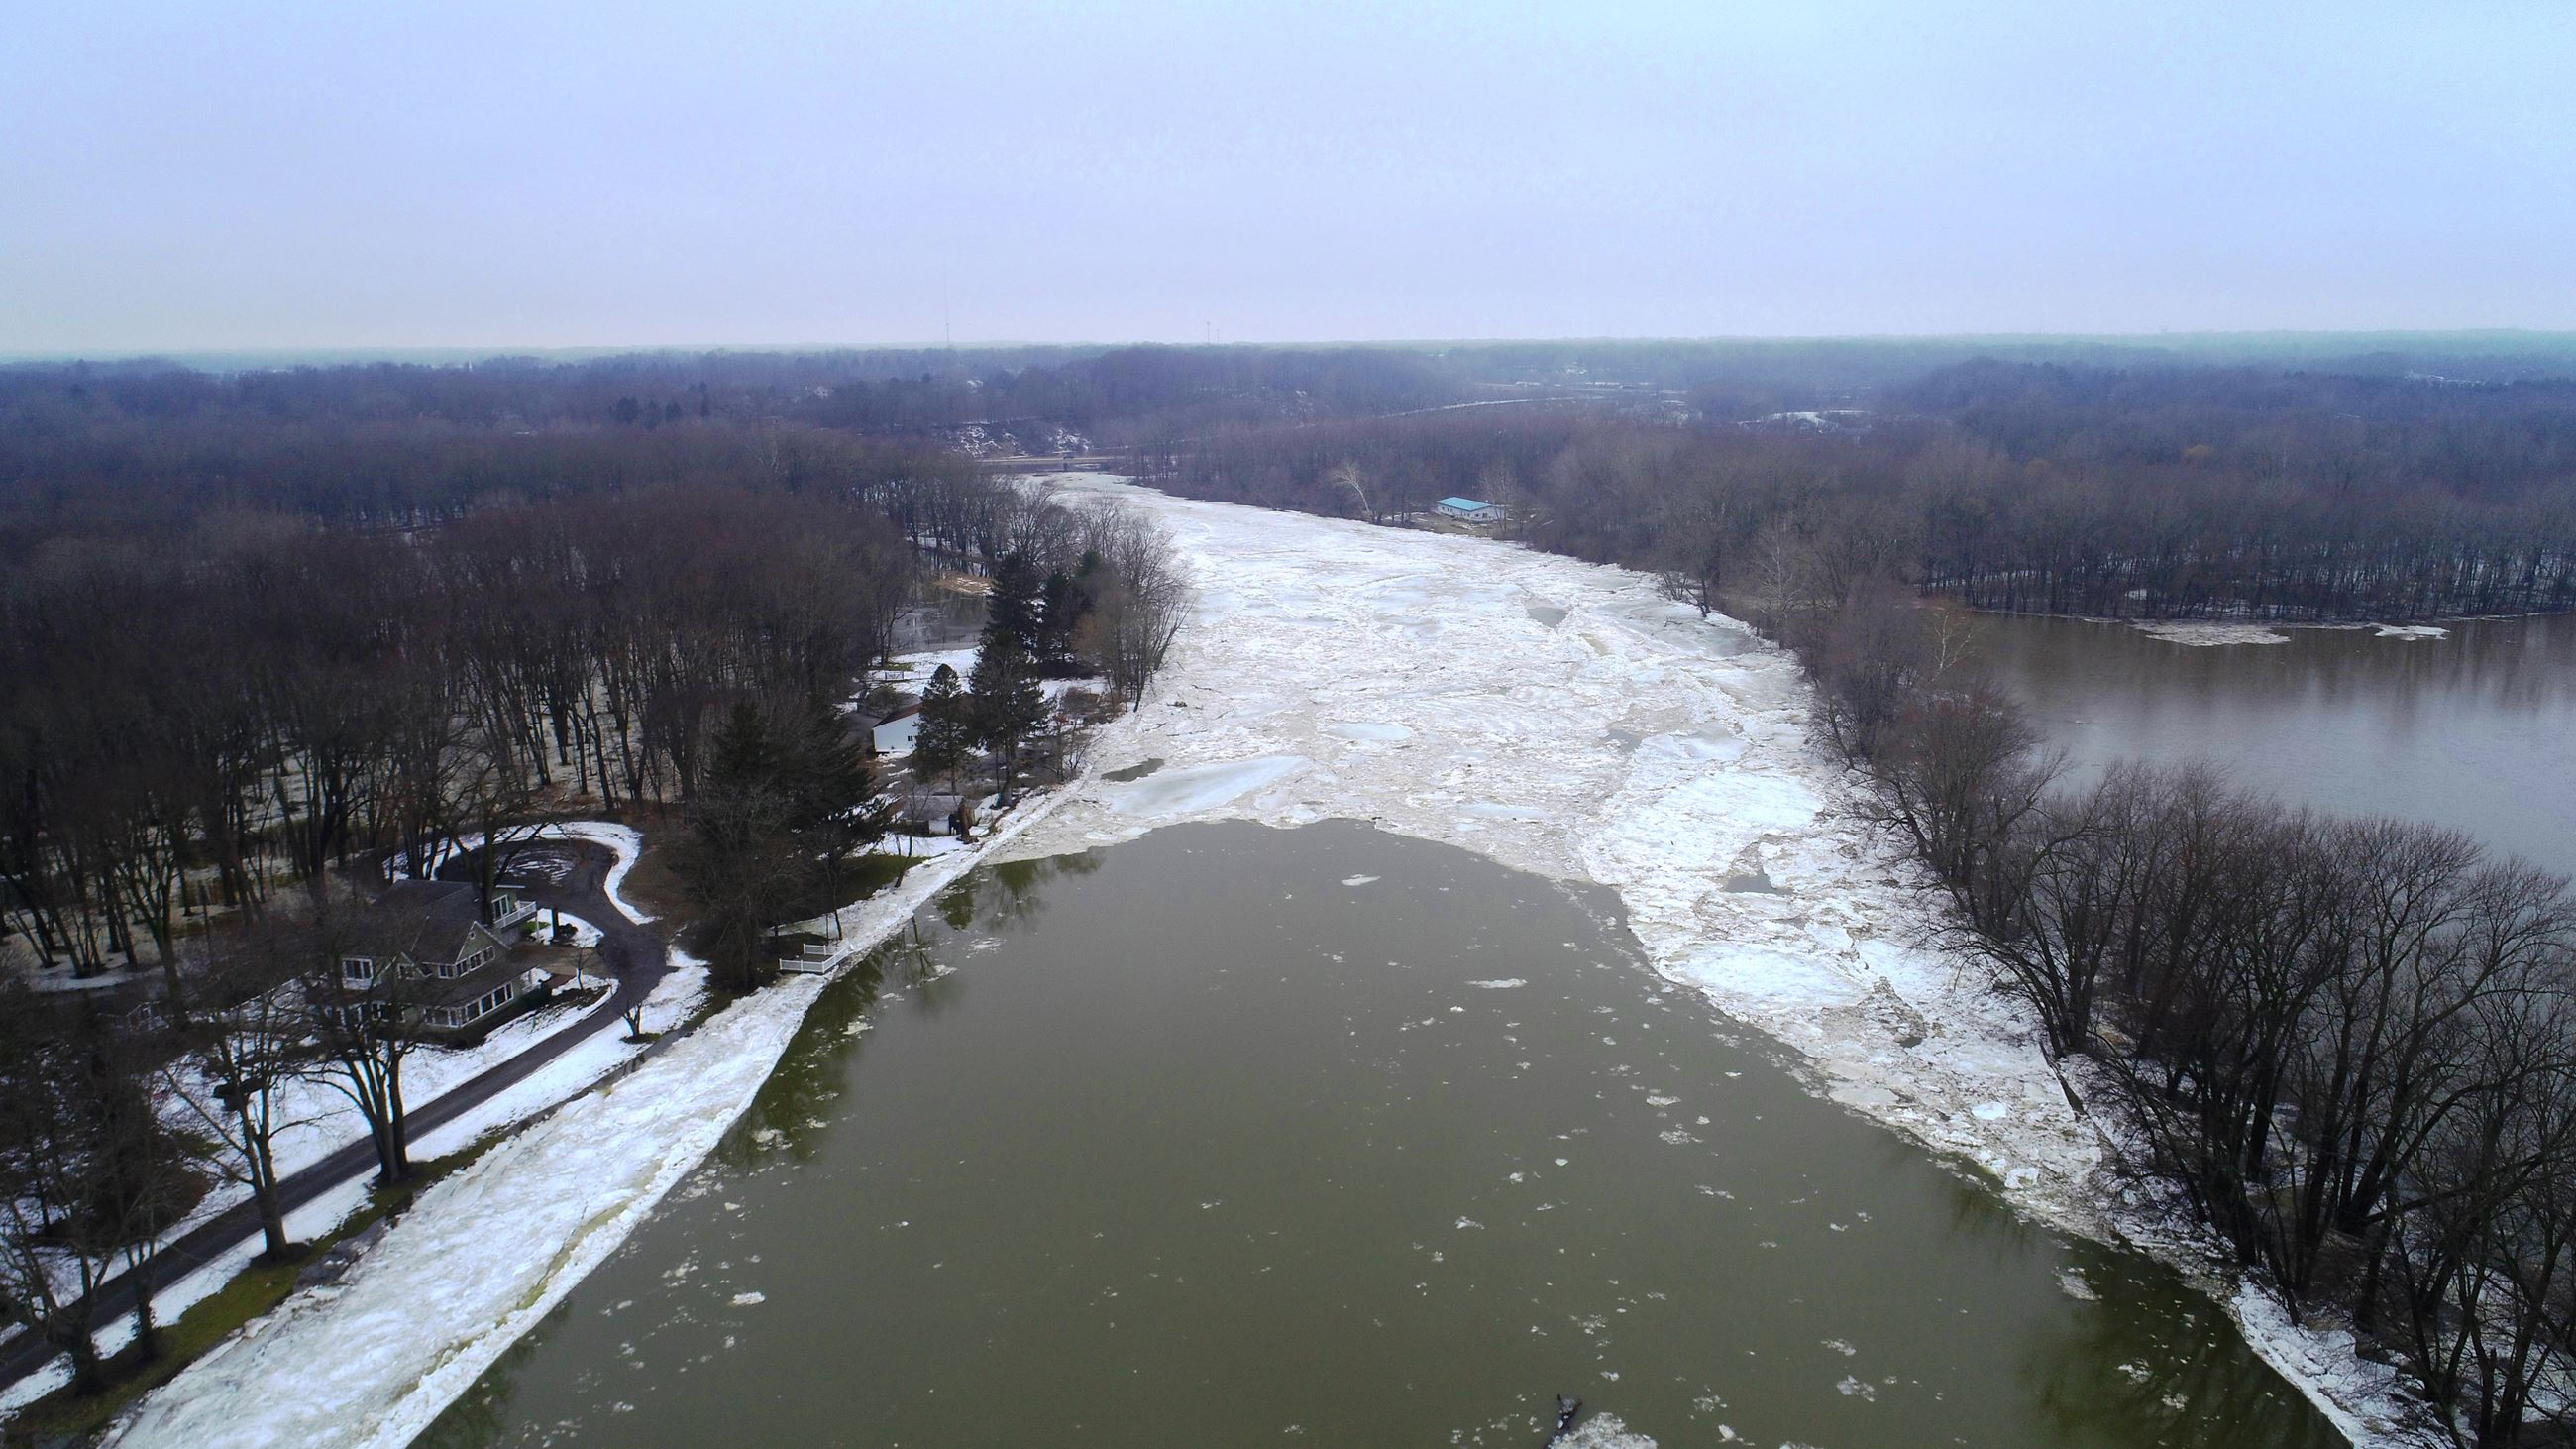 This picture shows ice jamming up at M-139 Highway Bridge blocking flow to the Saint Joseph River.